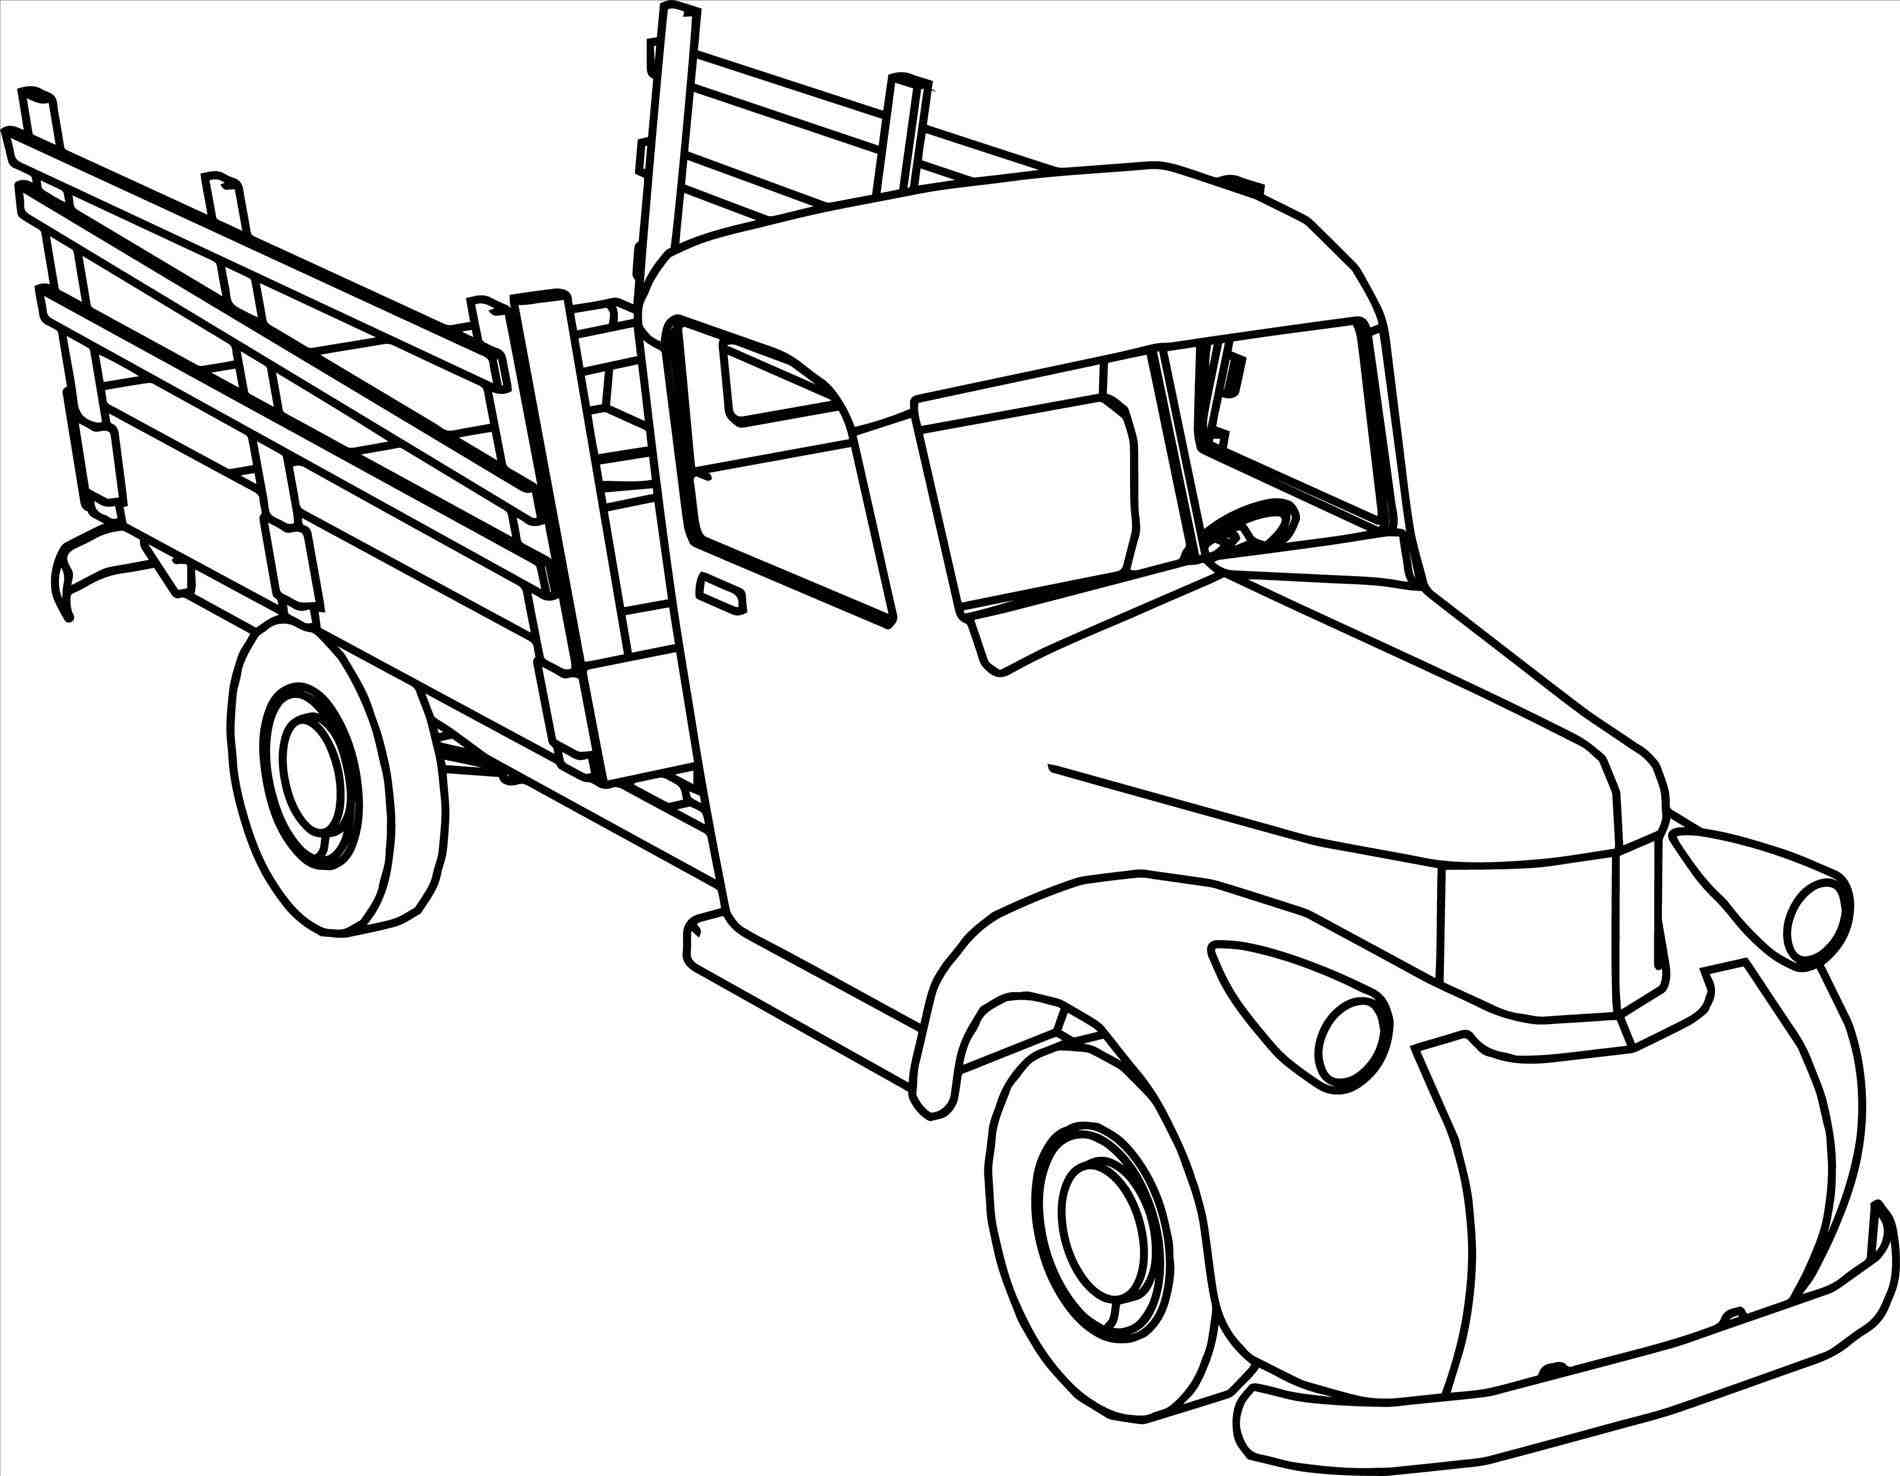 Kids Land Rover Defender Printable Free Car Chevy Avalanche Coloring Download Of Kids N Fun Printable